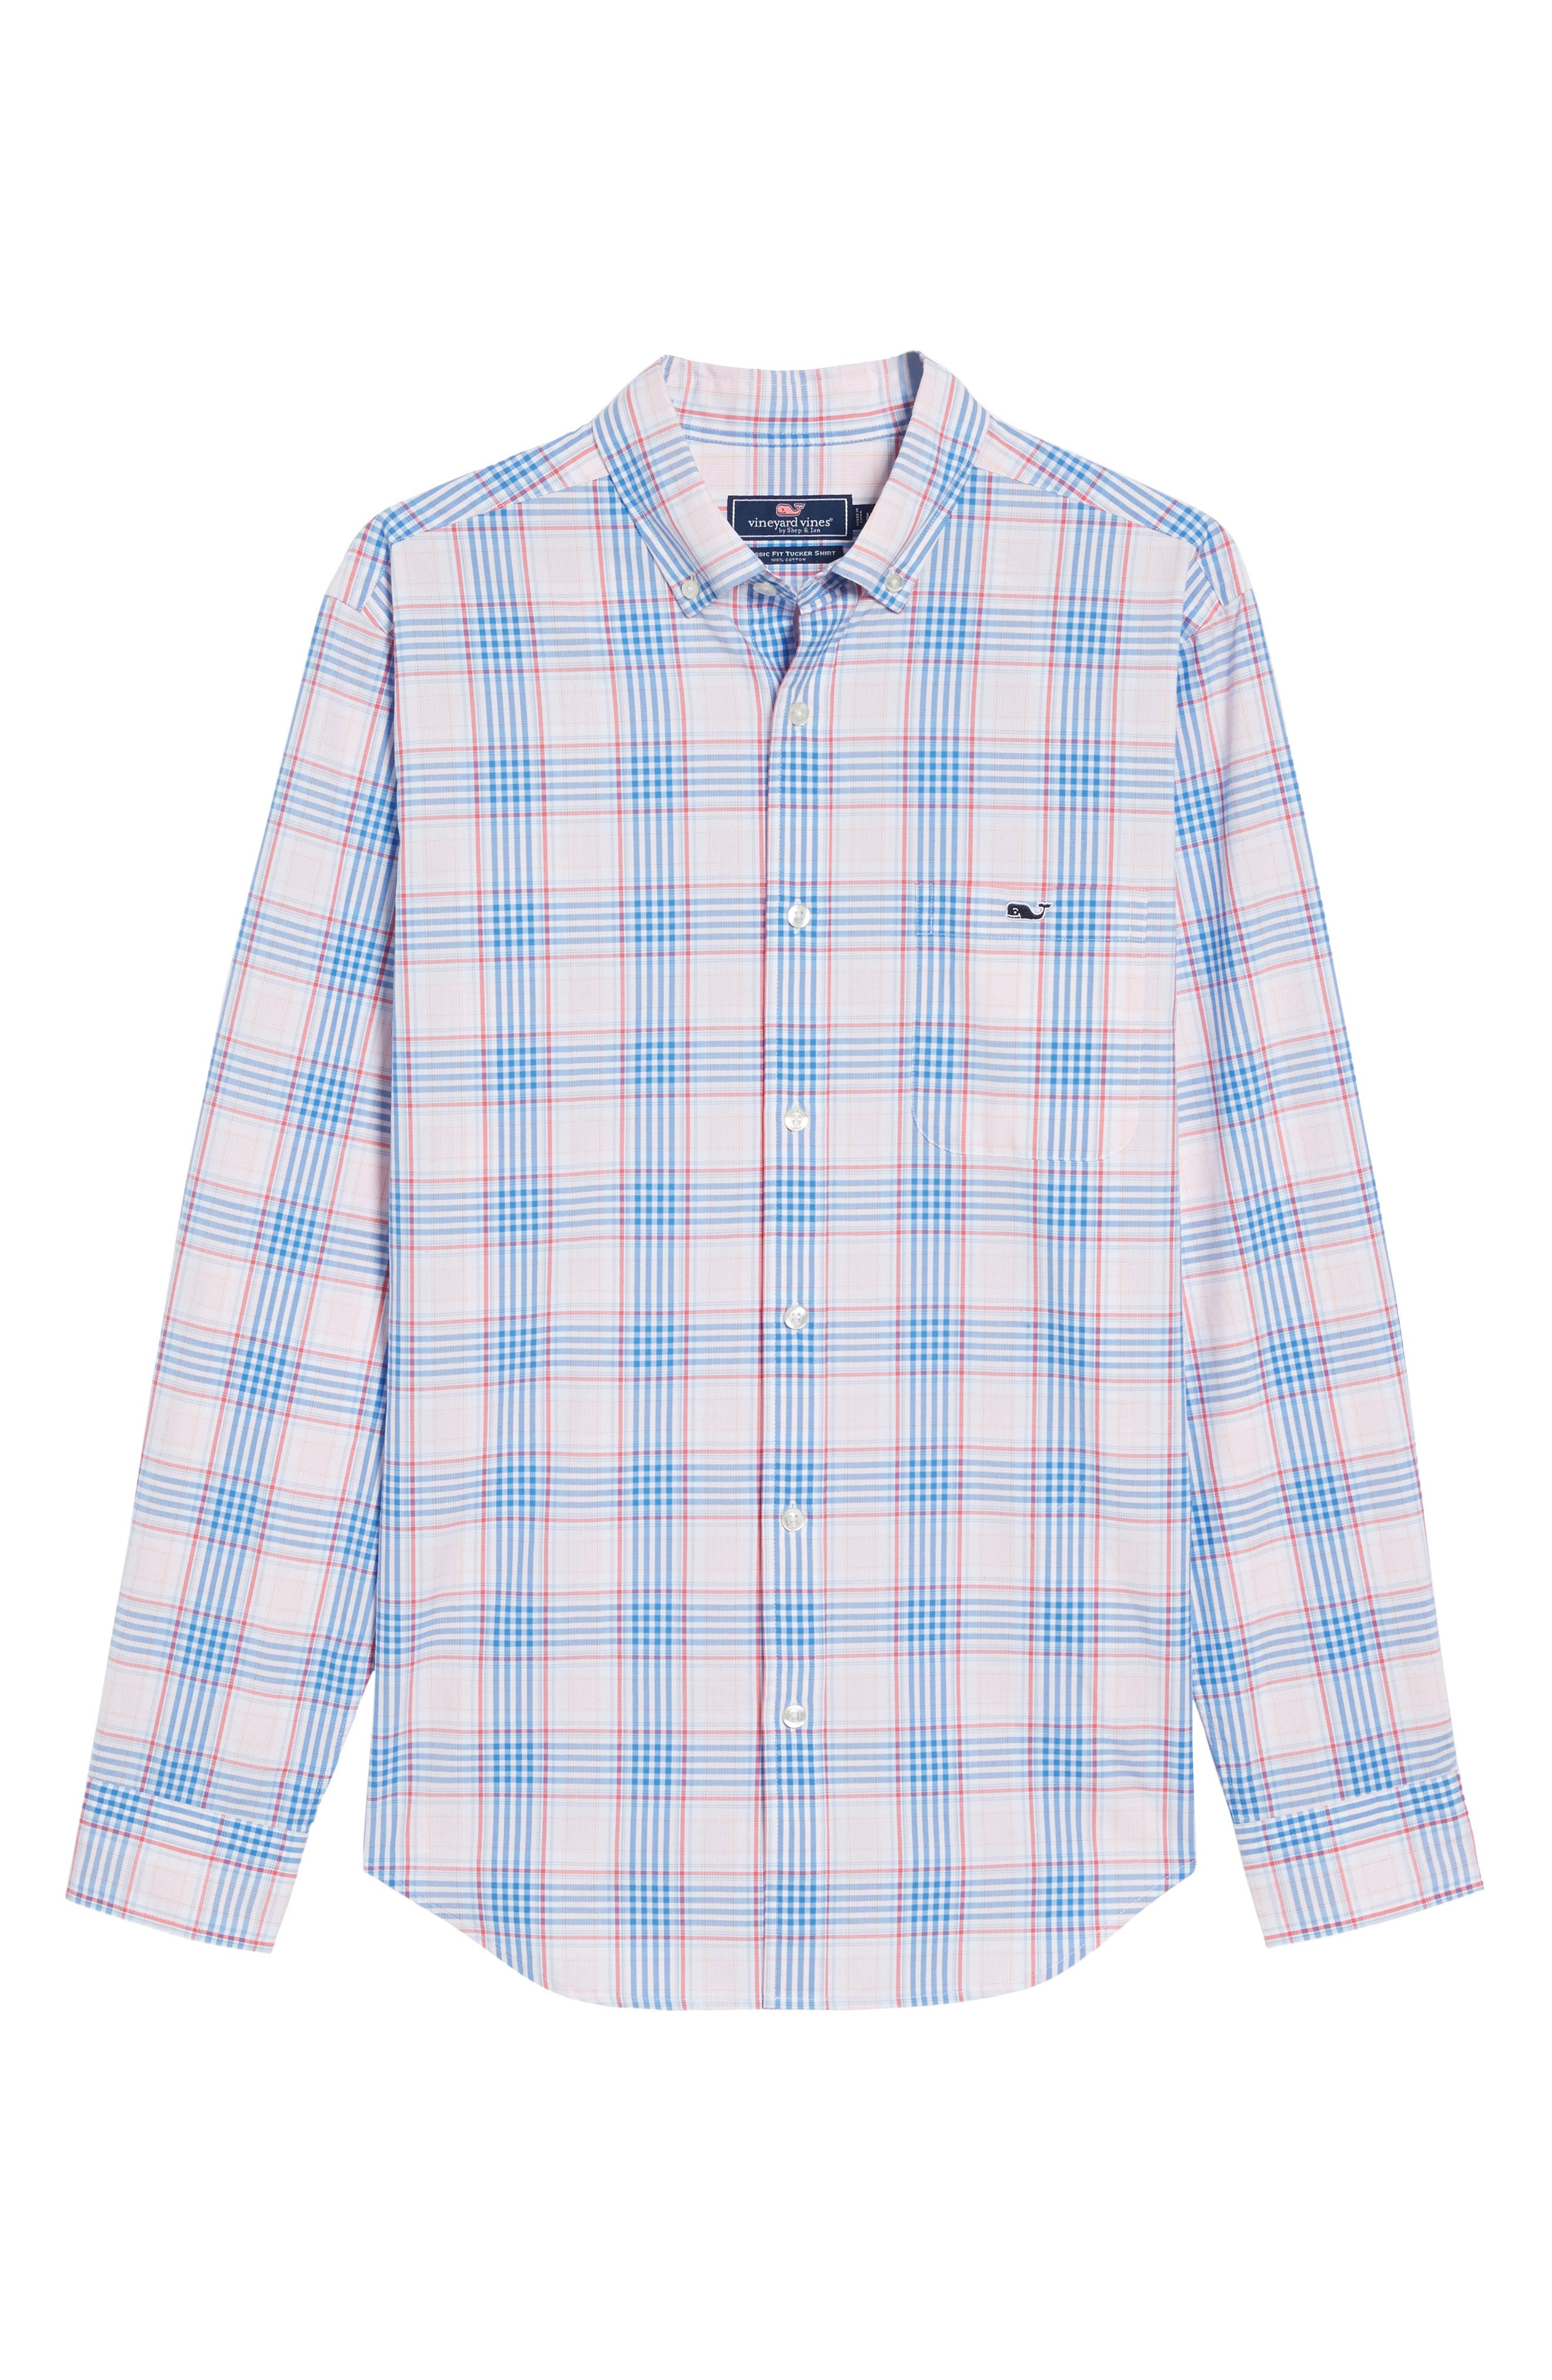 Pelican Plaid Tucker Classic Fit Sport Shirt,                             Alternate thumbnail 6, color,                             Rose Pink